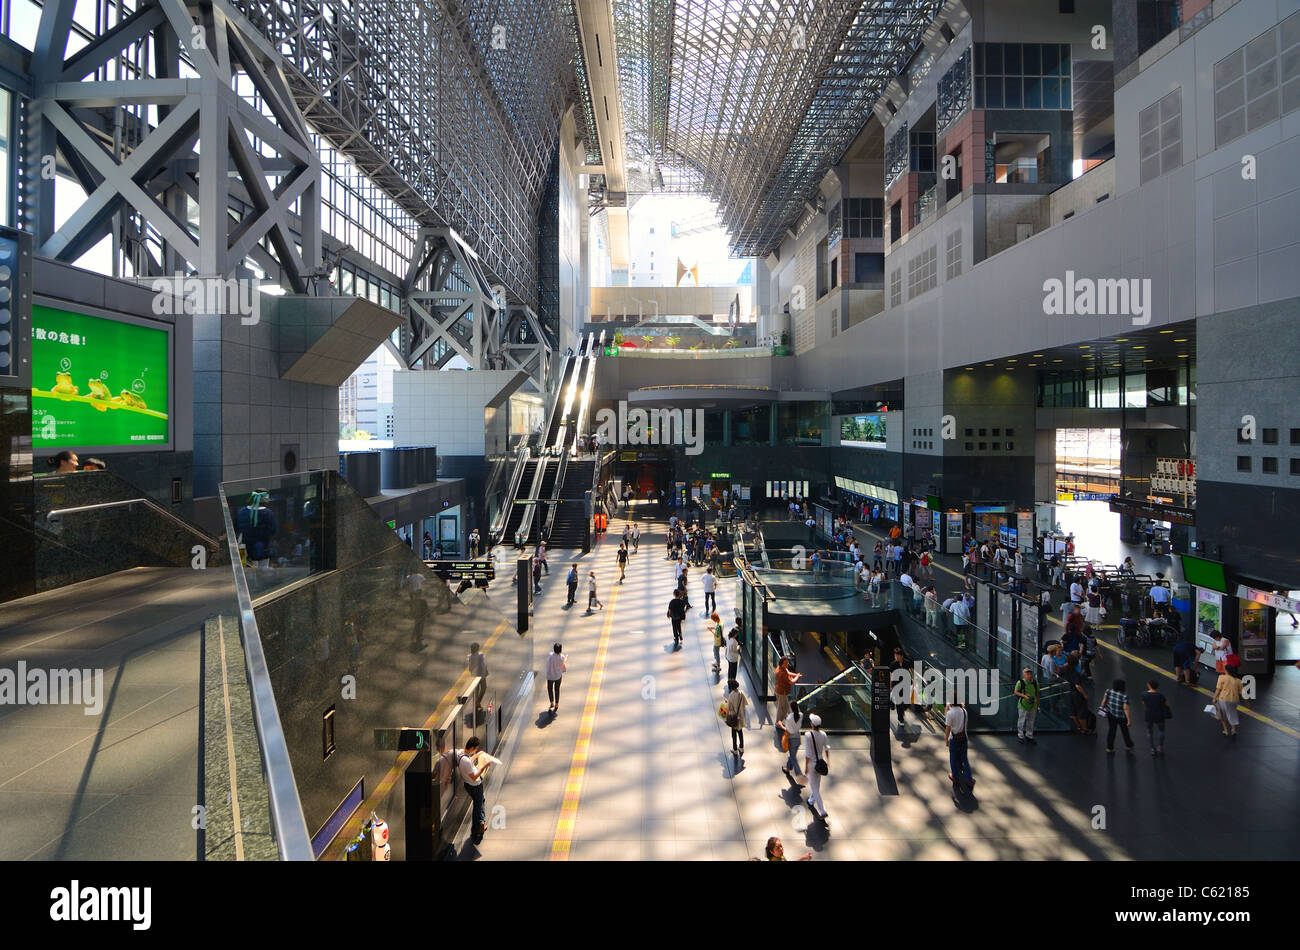 Kyoto, Japan - July 10, 2011: Kyoto Station is one of the biggest stations in Japan. - Stock Image